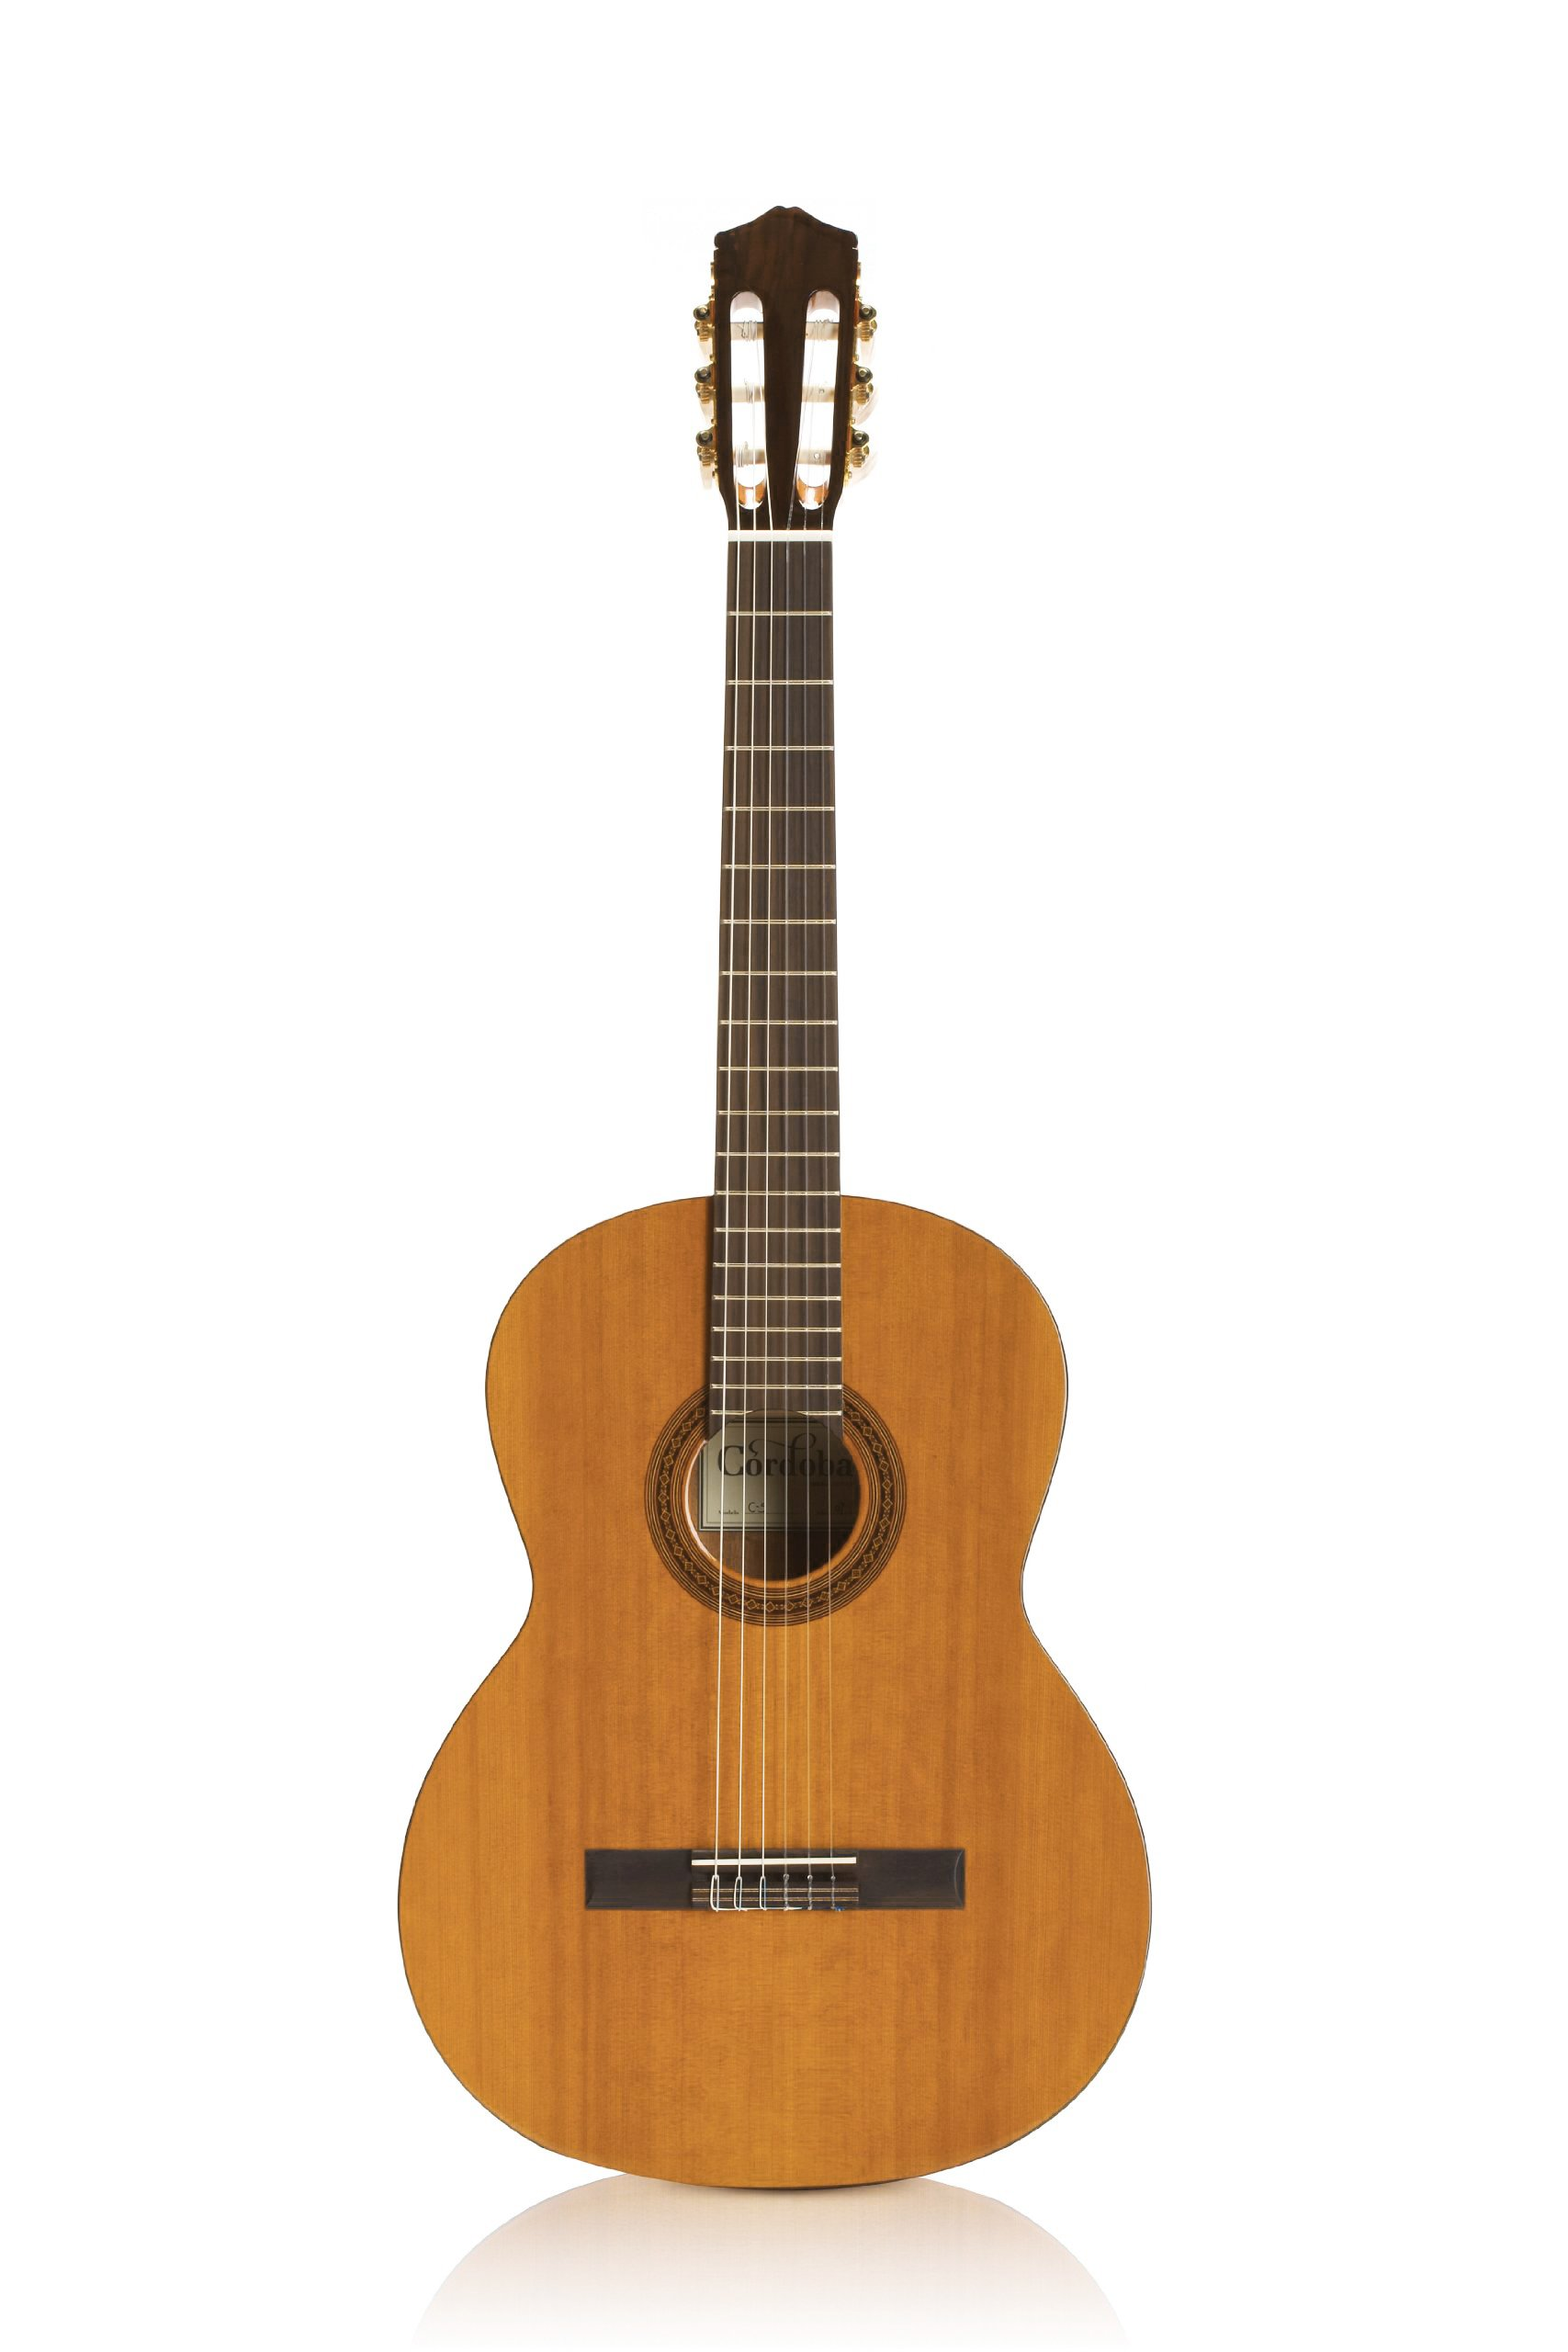 Cordoba C5 Iberia Series Classical Guitar by Cordoba Guitars (Image #1)